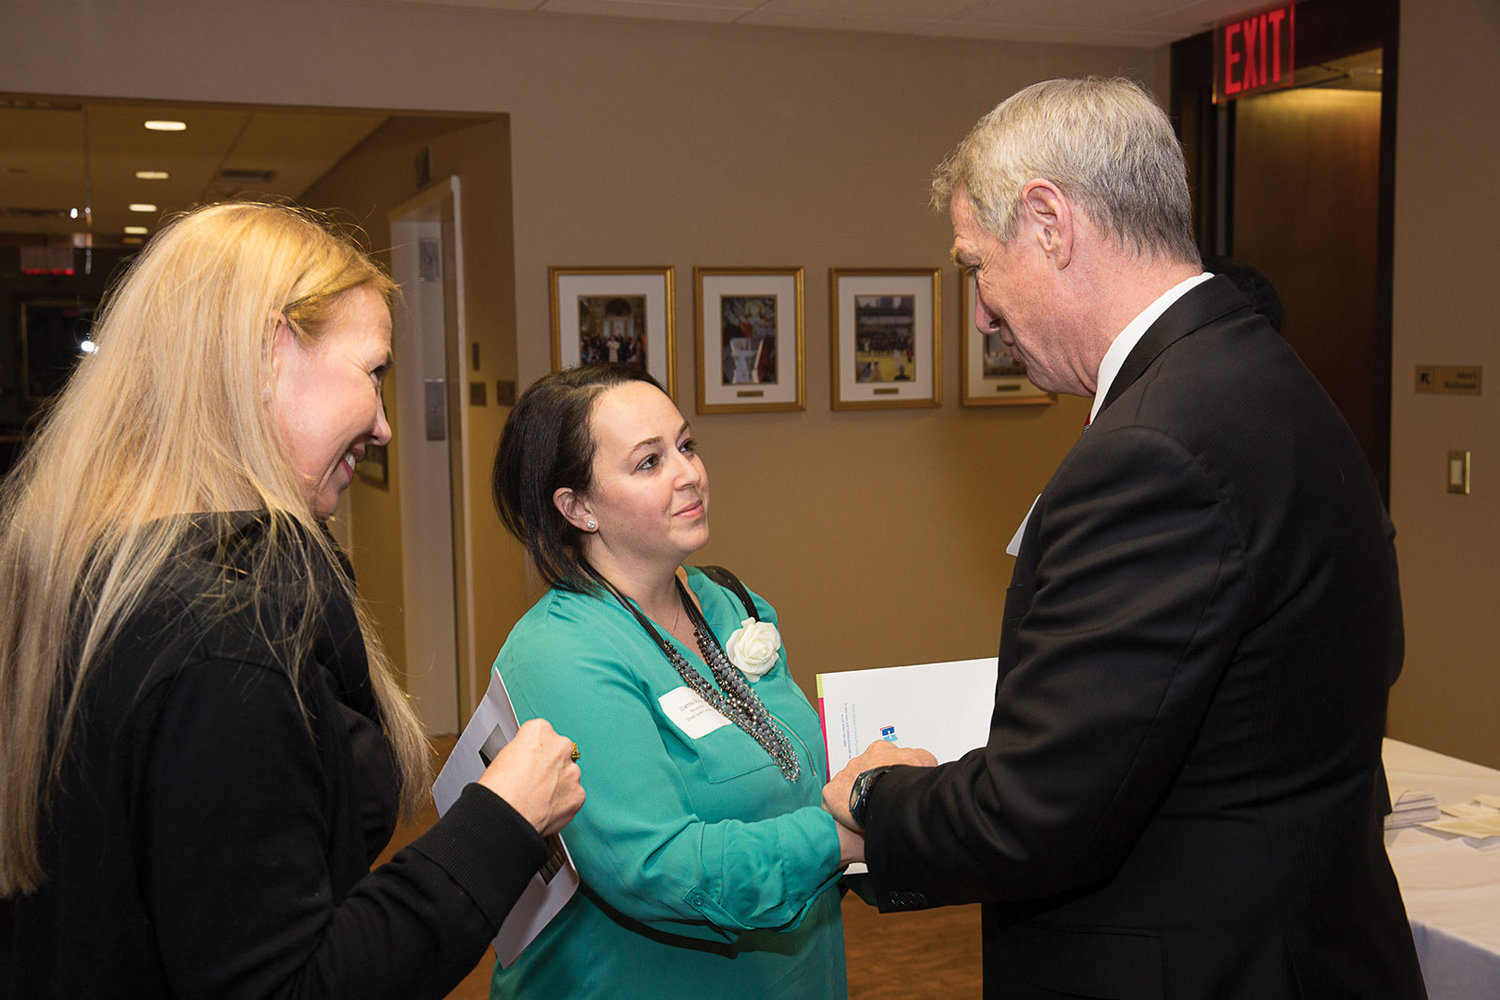 Dr. Timothy McNiff, superintendent of schools, greets Curran Fellowship candidate Joanna Moore, center, of Resurrection School in Rye, and GinaMarie Fonte, principal of Resurrection School.